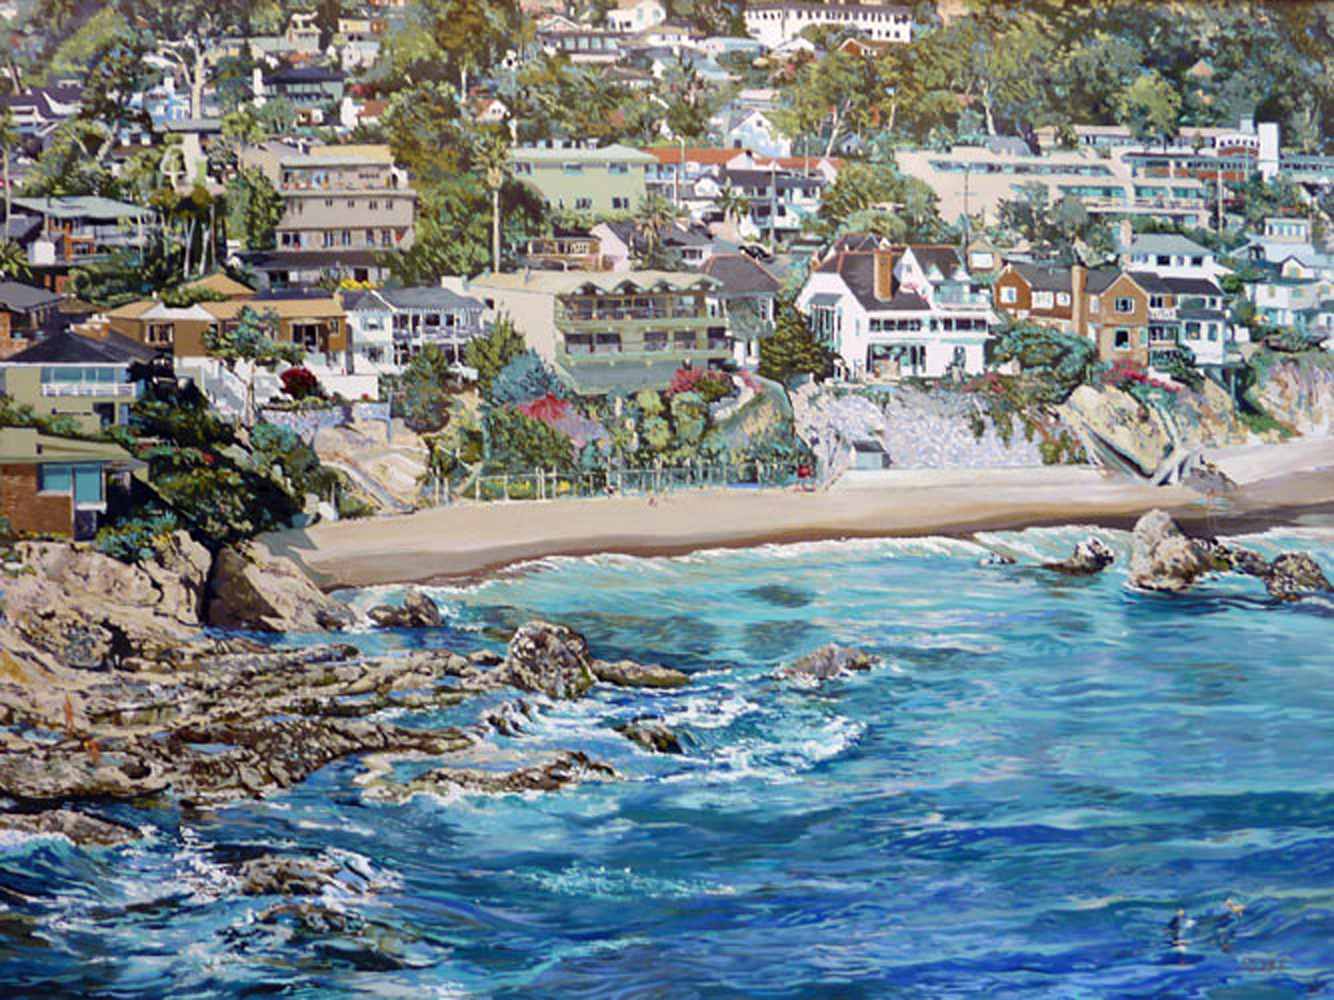 Woods Cove, Laguna Beach